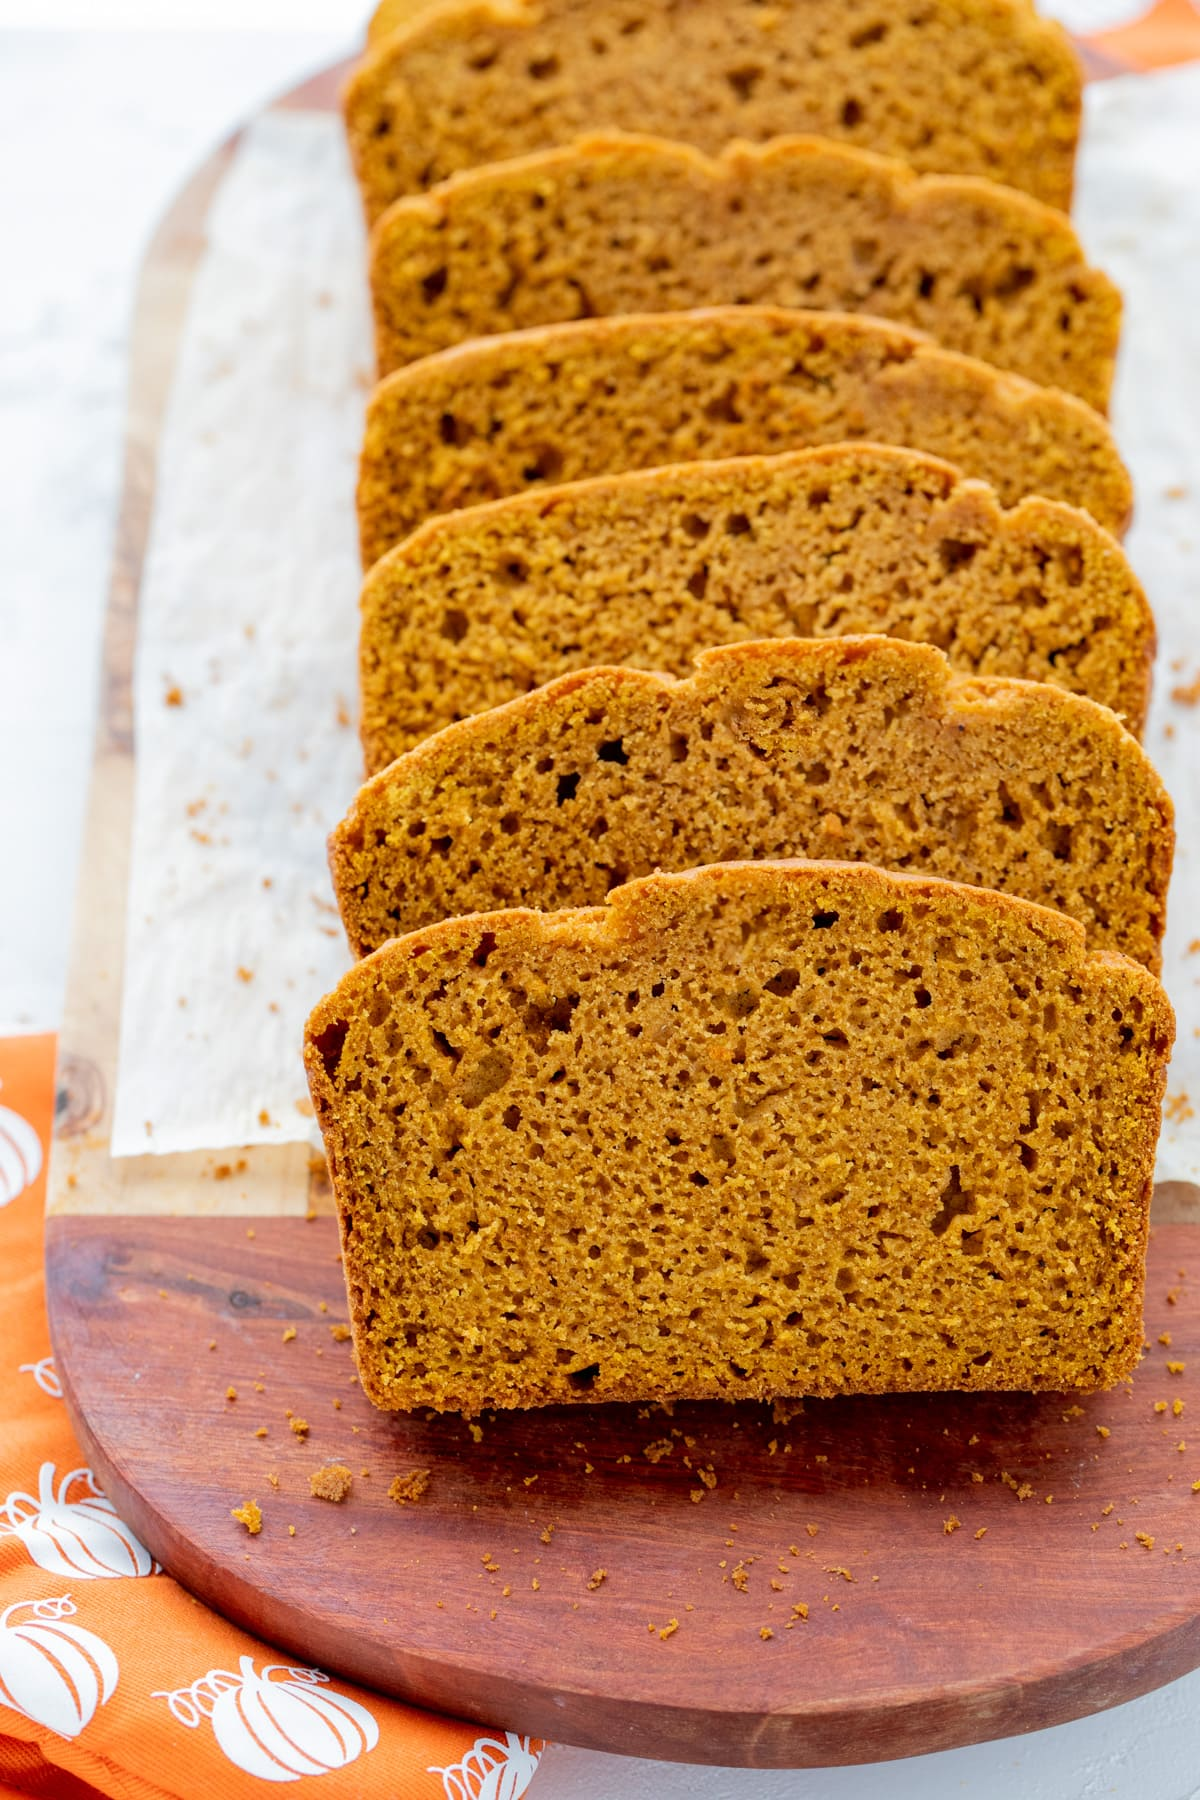 Slices of pumpkin bread on white parchment and wooden cutting board